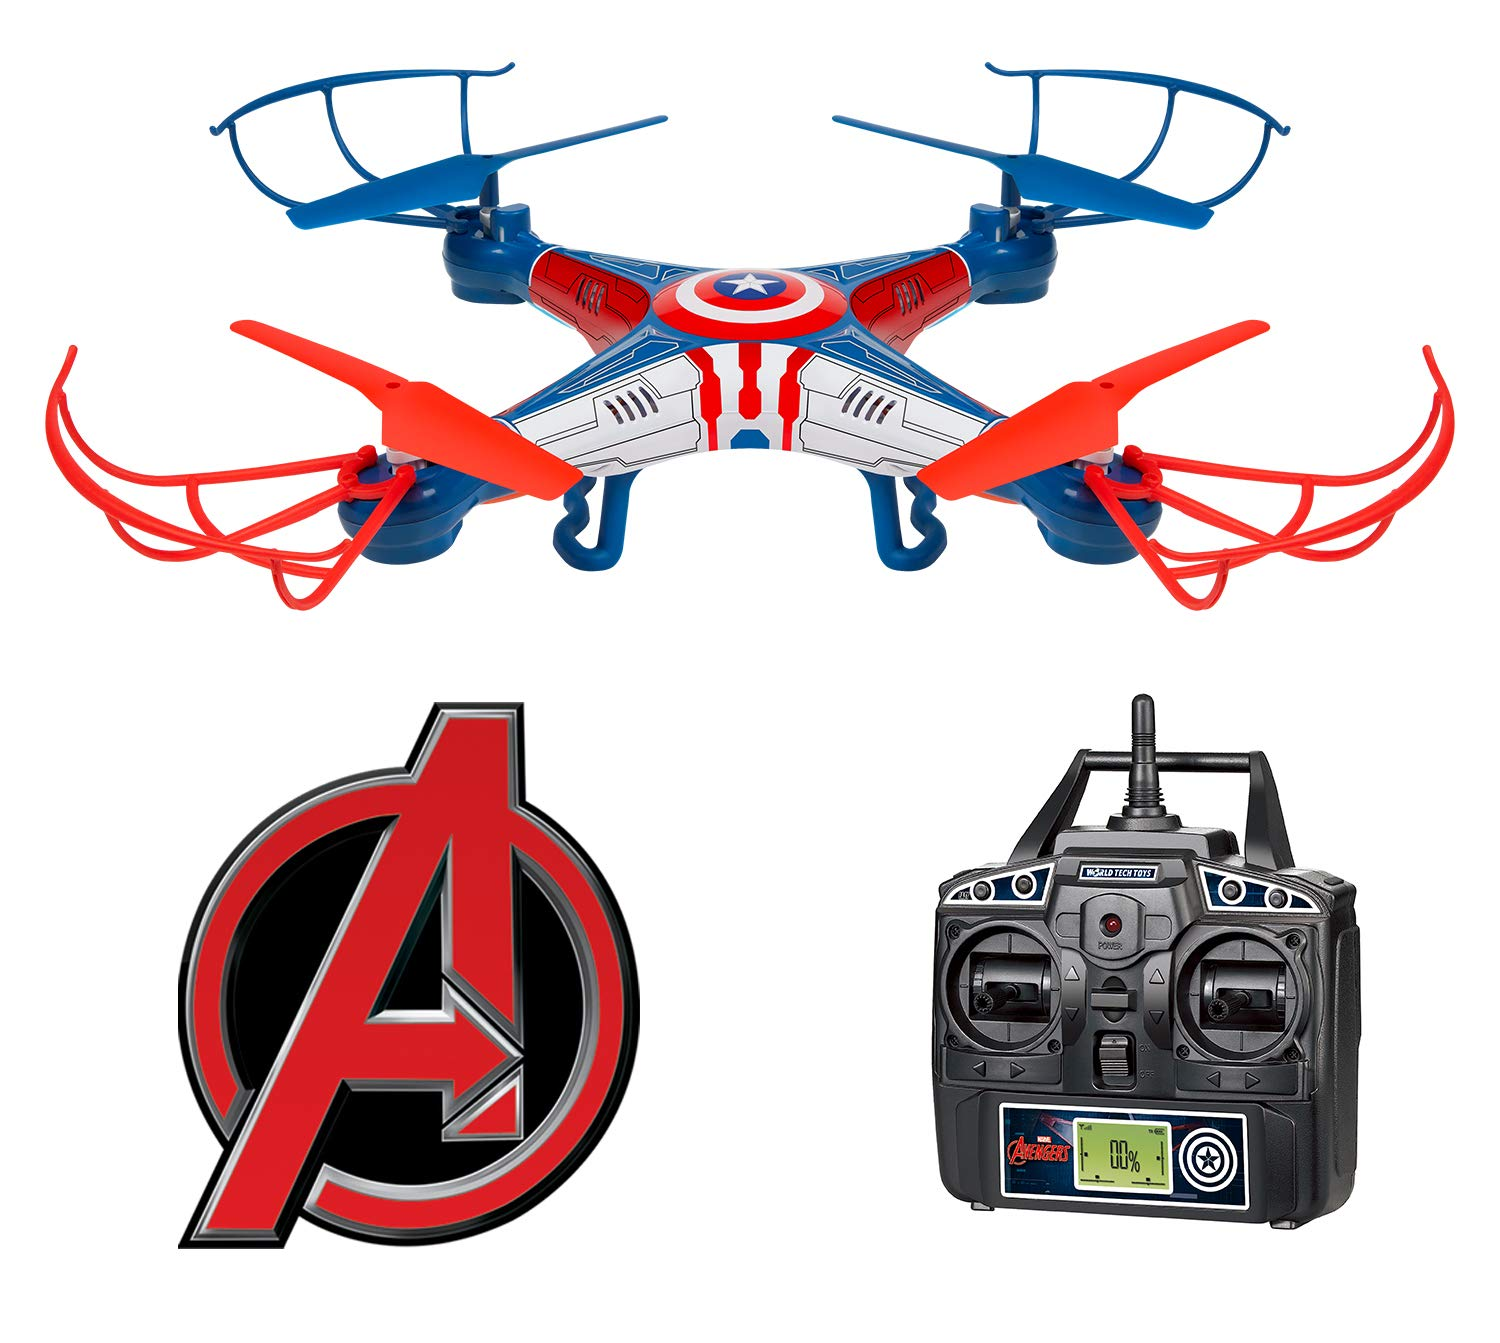 World Tech Toys 2.4Ghz Marvel - Captain America Sky Hero 4.5 Channel RC Drone by World Tech Toys